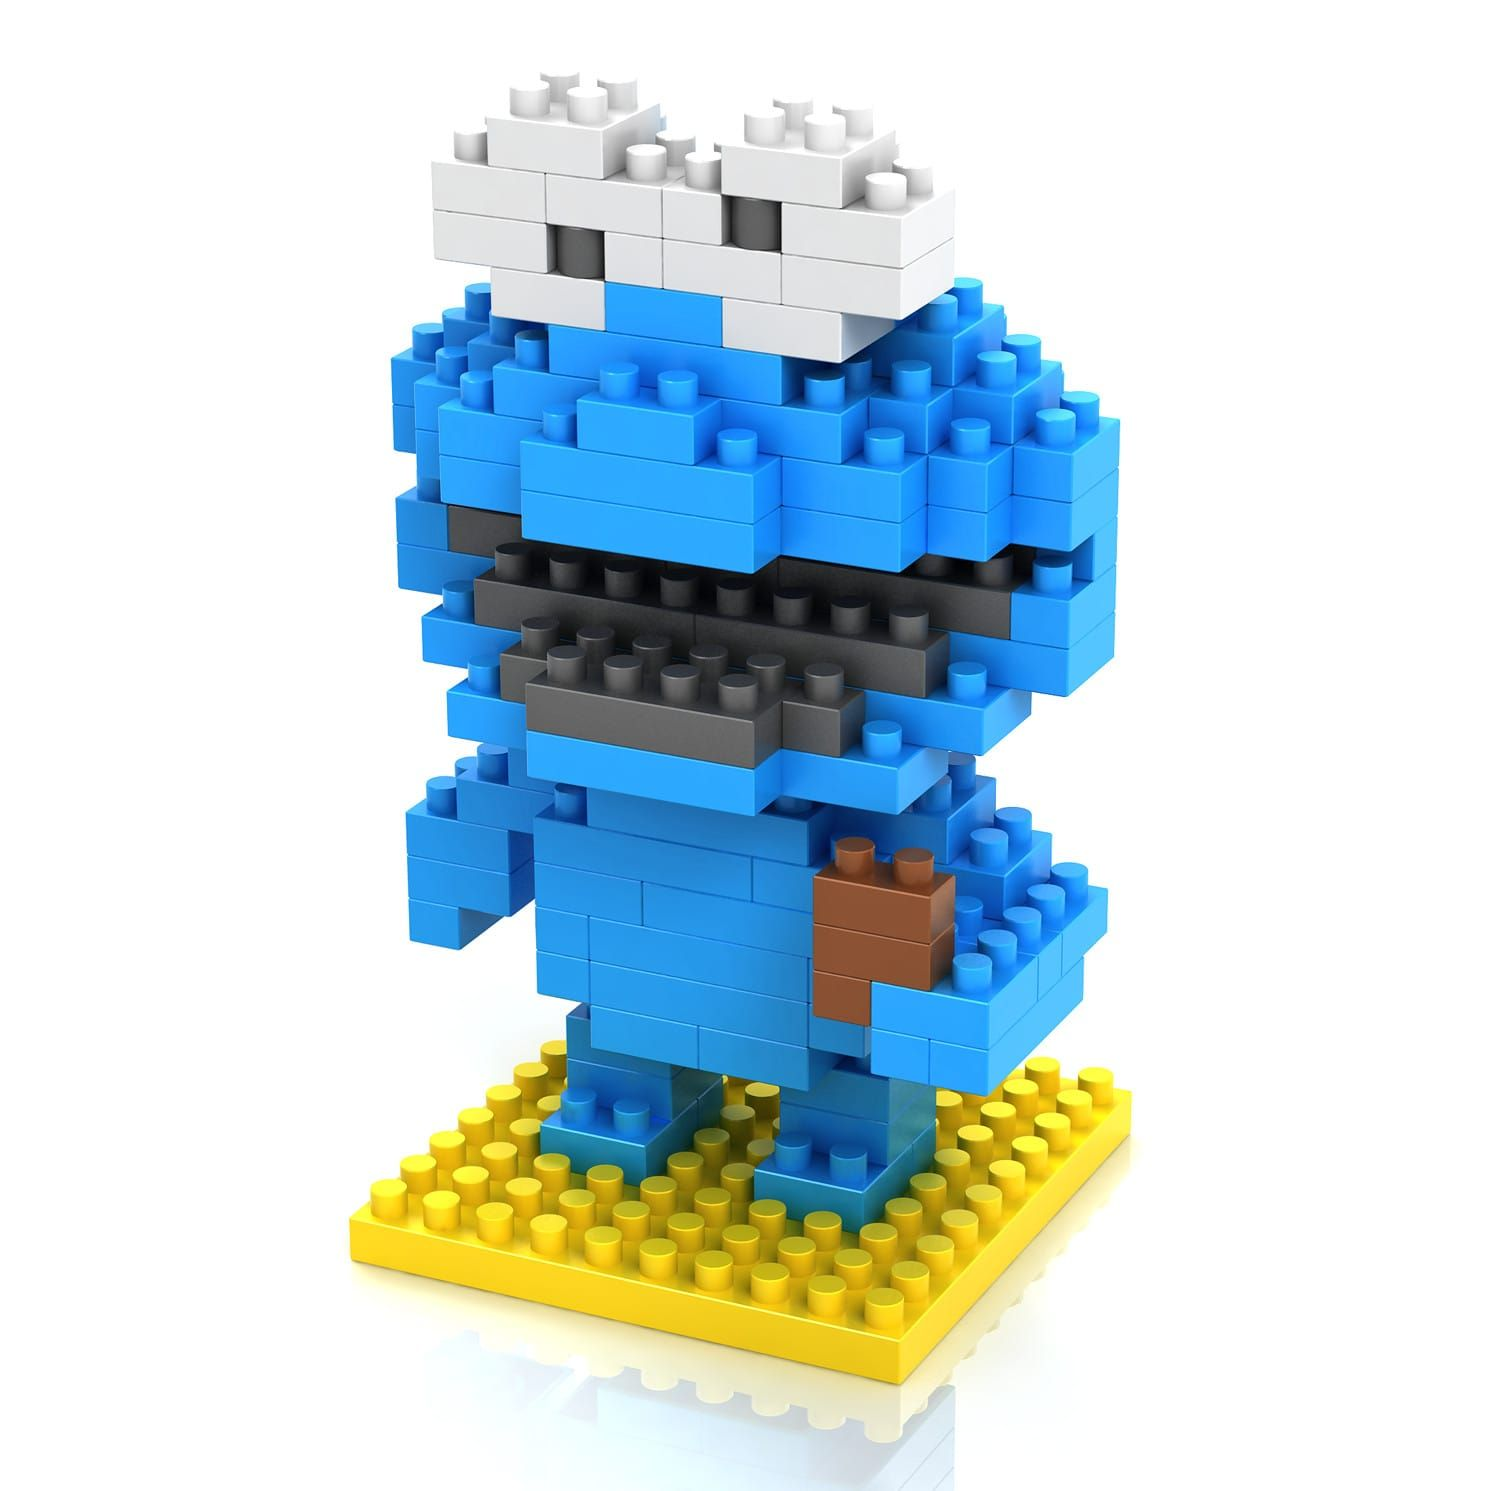 LOZ Cookie Monster Building Blocks Price $4 95 & FREE Shipping